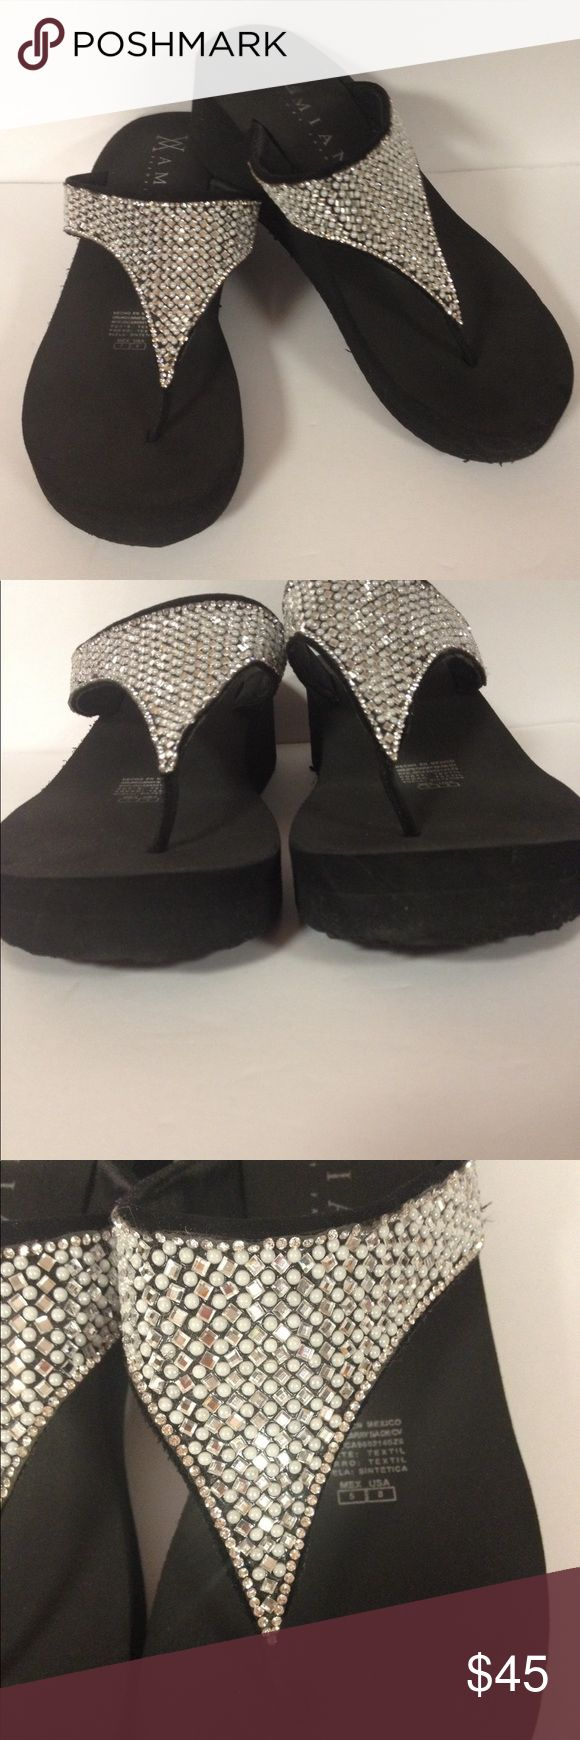 Amiani resort fashion bling flip flops 8 Excellent condition. Only worn a few times inside.  Very comfy.  Black.  Size 8 Amiana Shoes Sandals